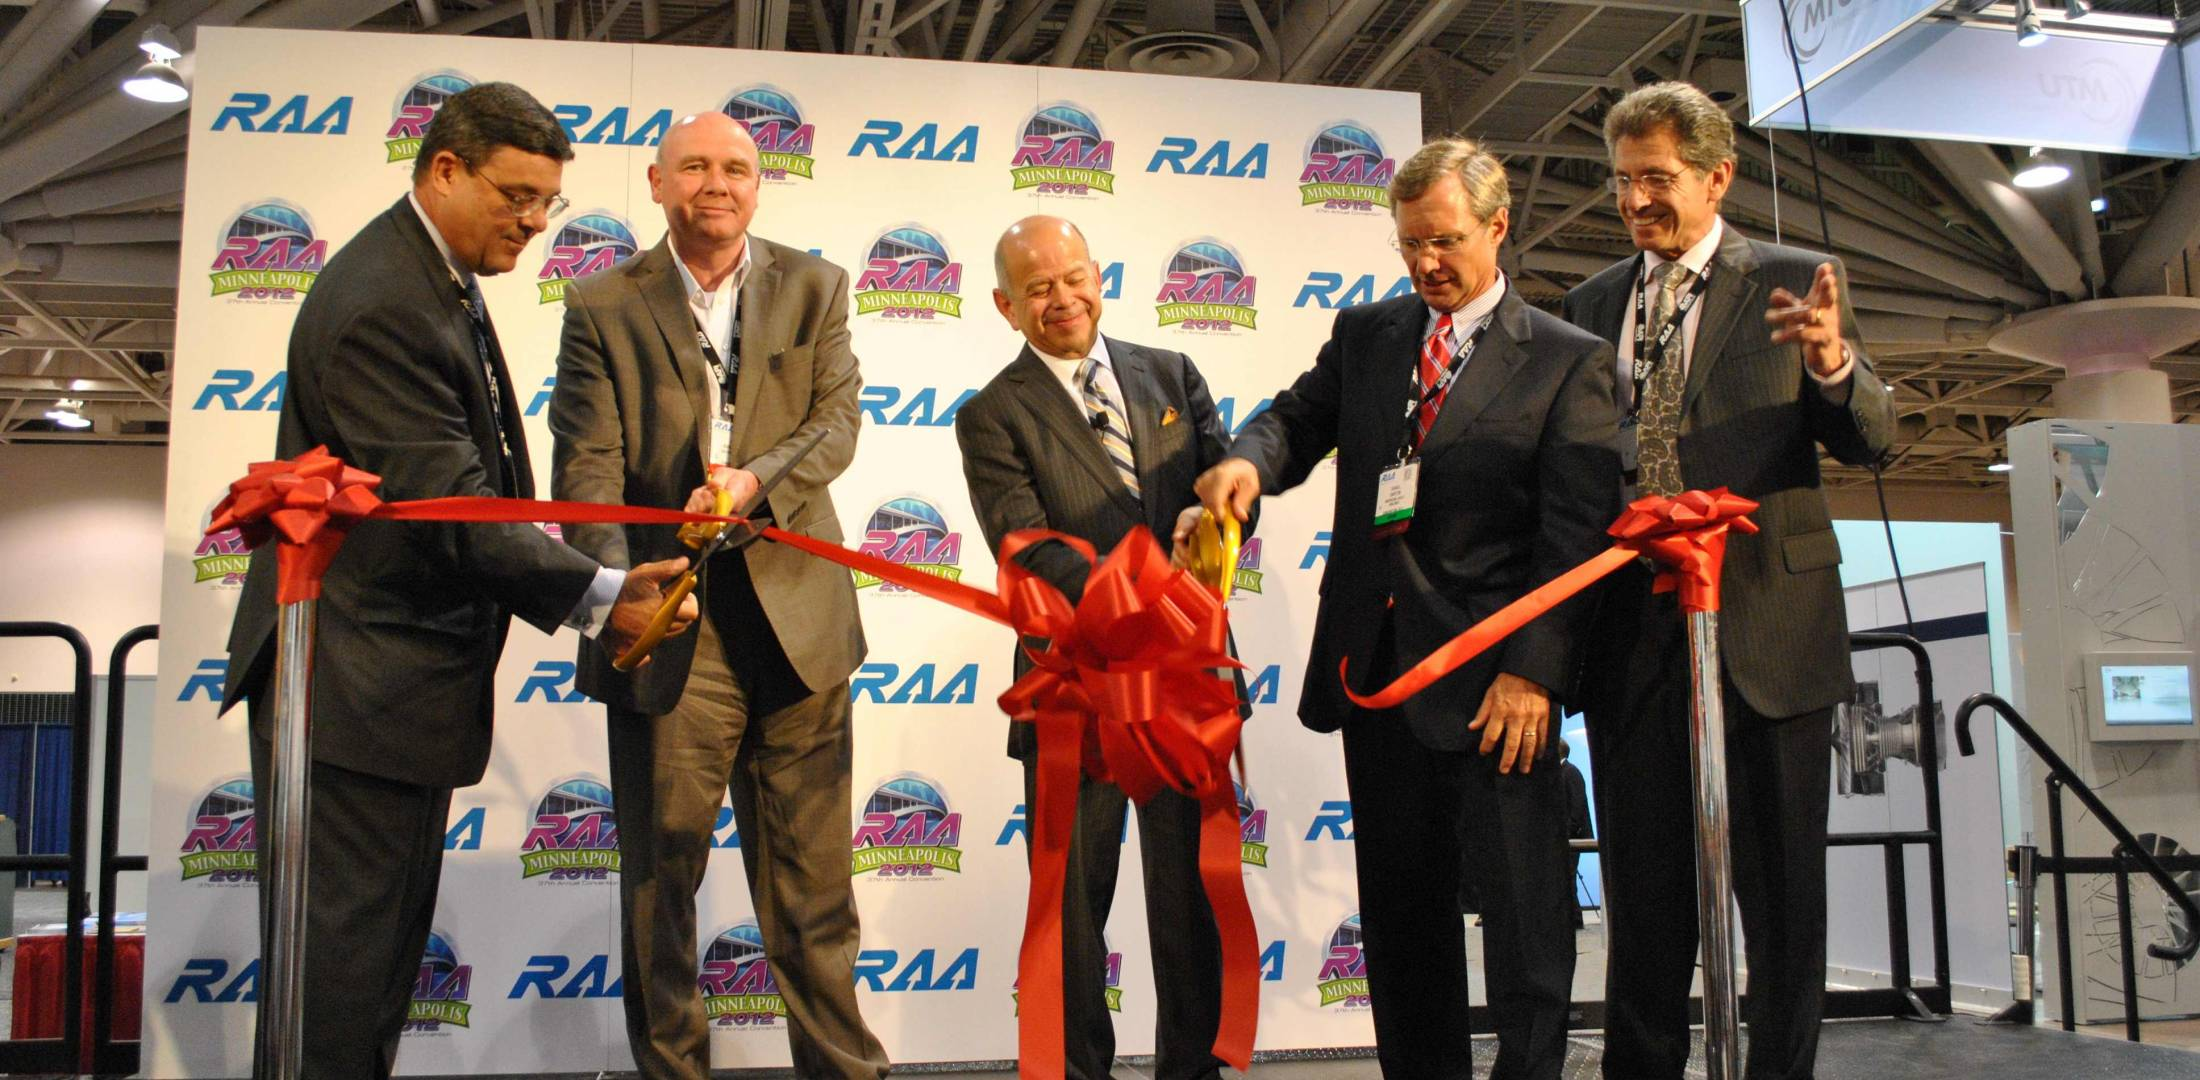 The 2012 RAA convention brought news of new plans for turboprop-powered airliners.